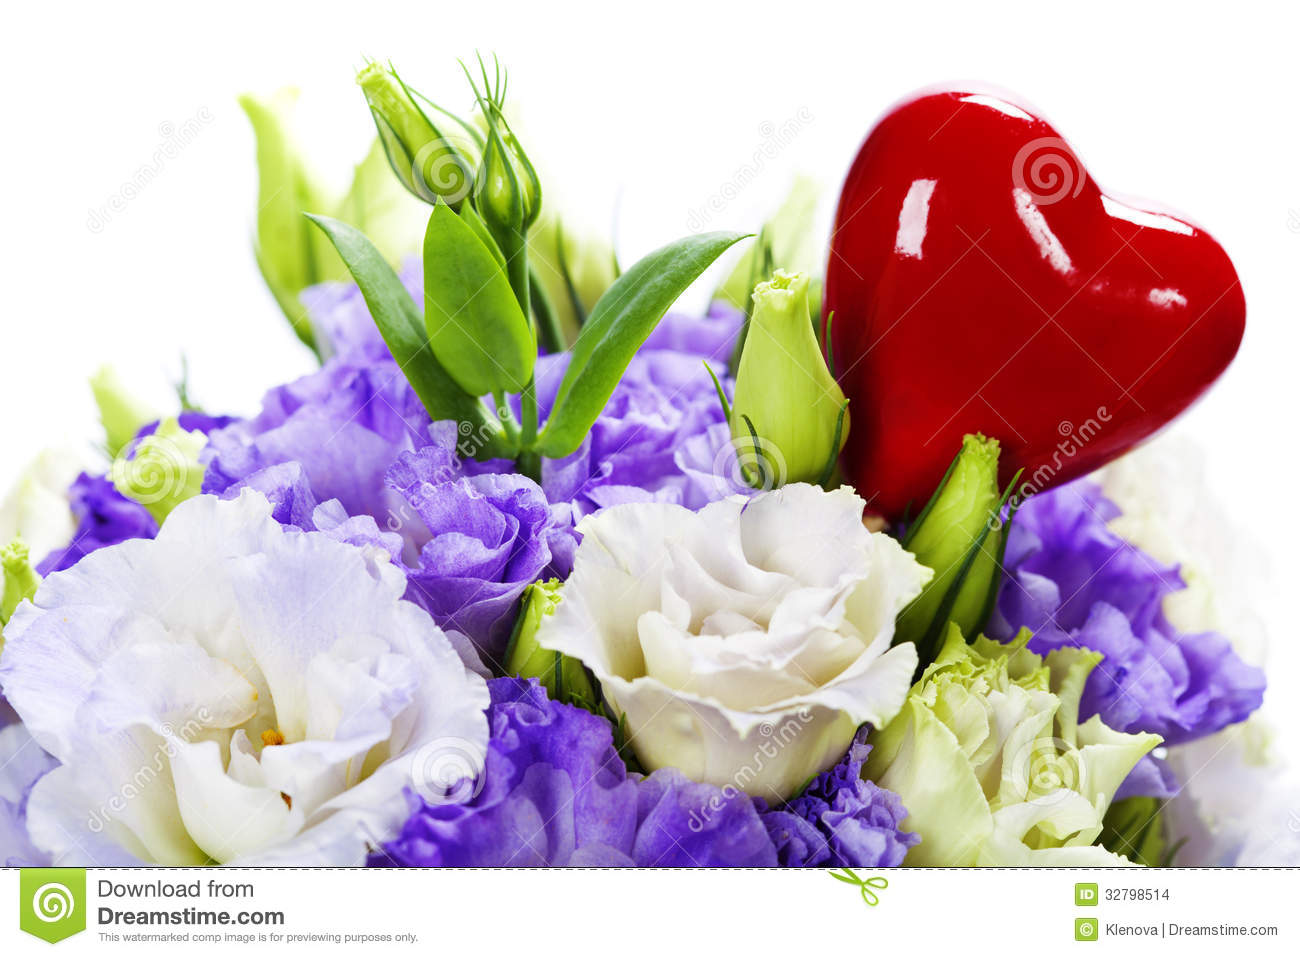 pictures of beautiful bouquet of flowers | My Web Value